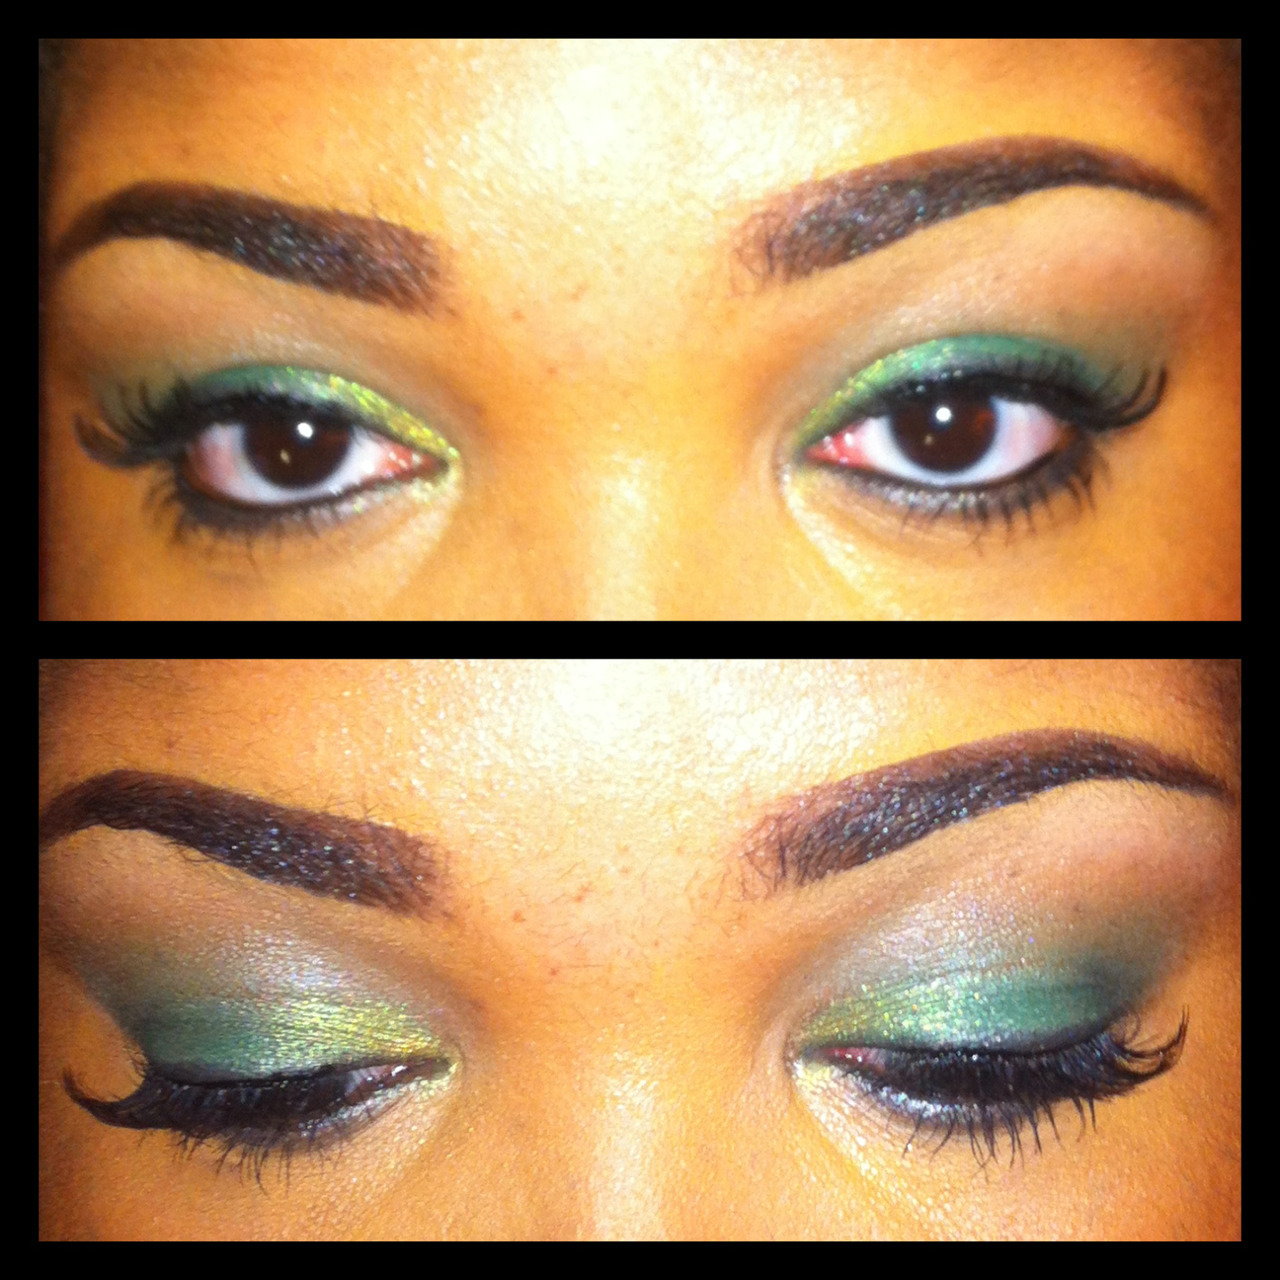 I never wear green eye shadow, so I thought I'd branch out today.